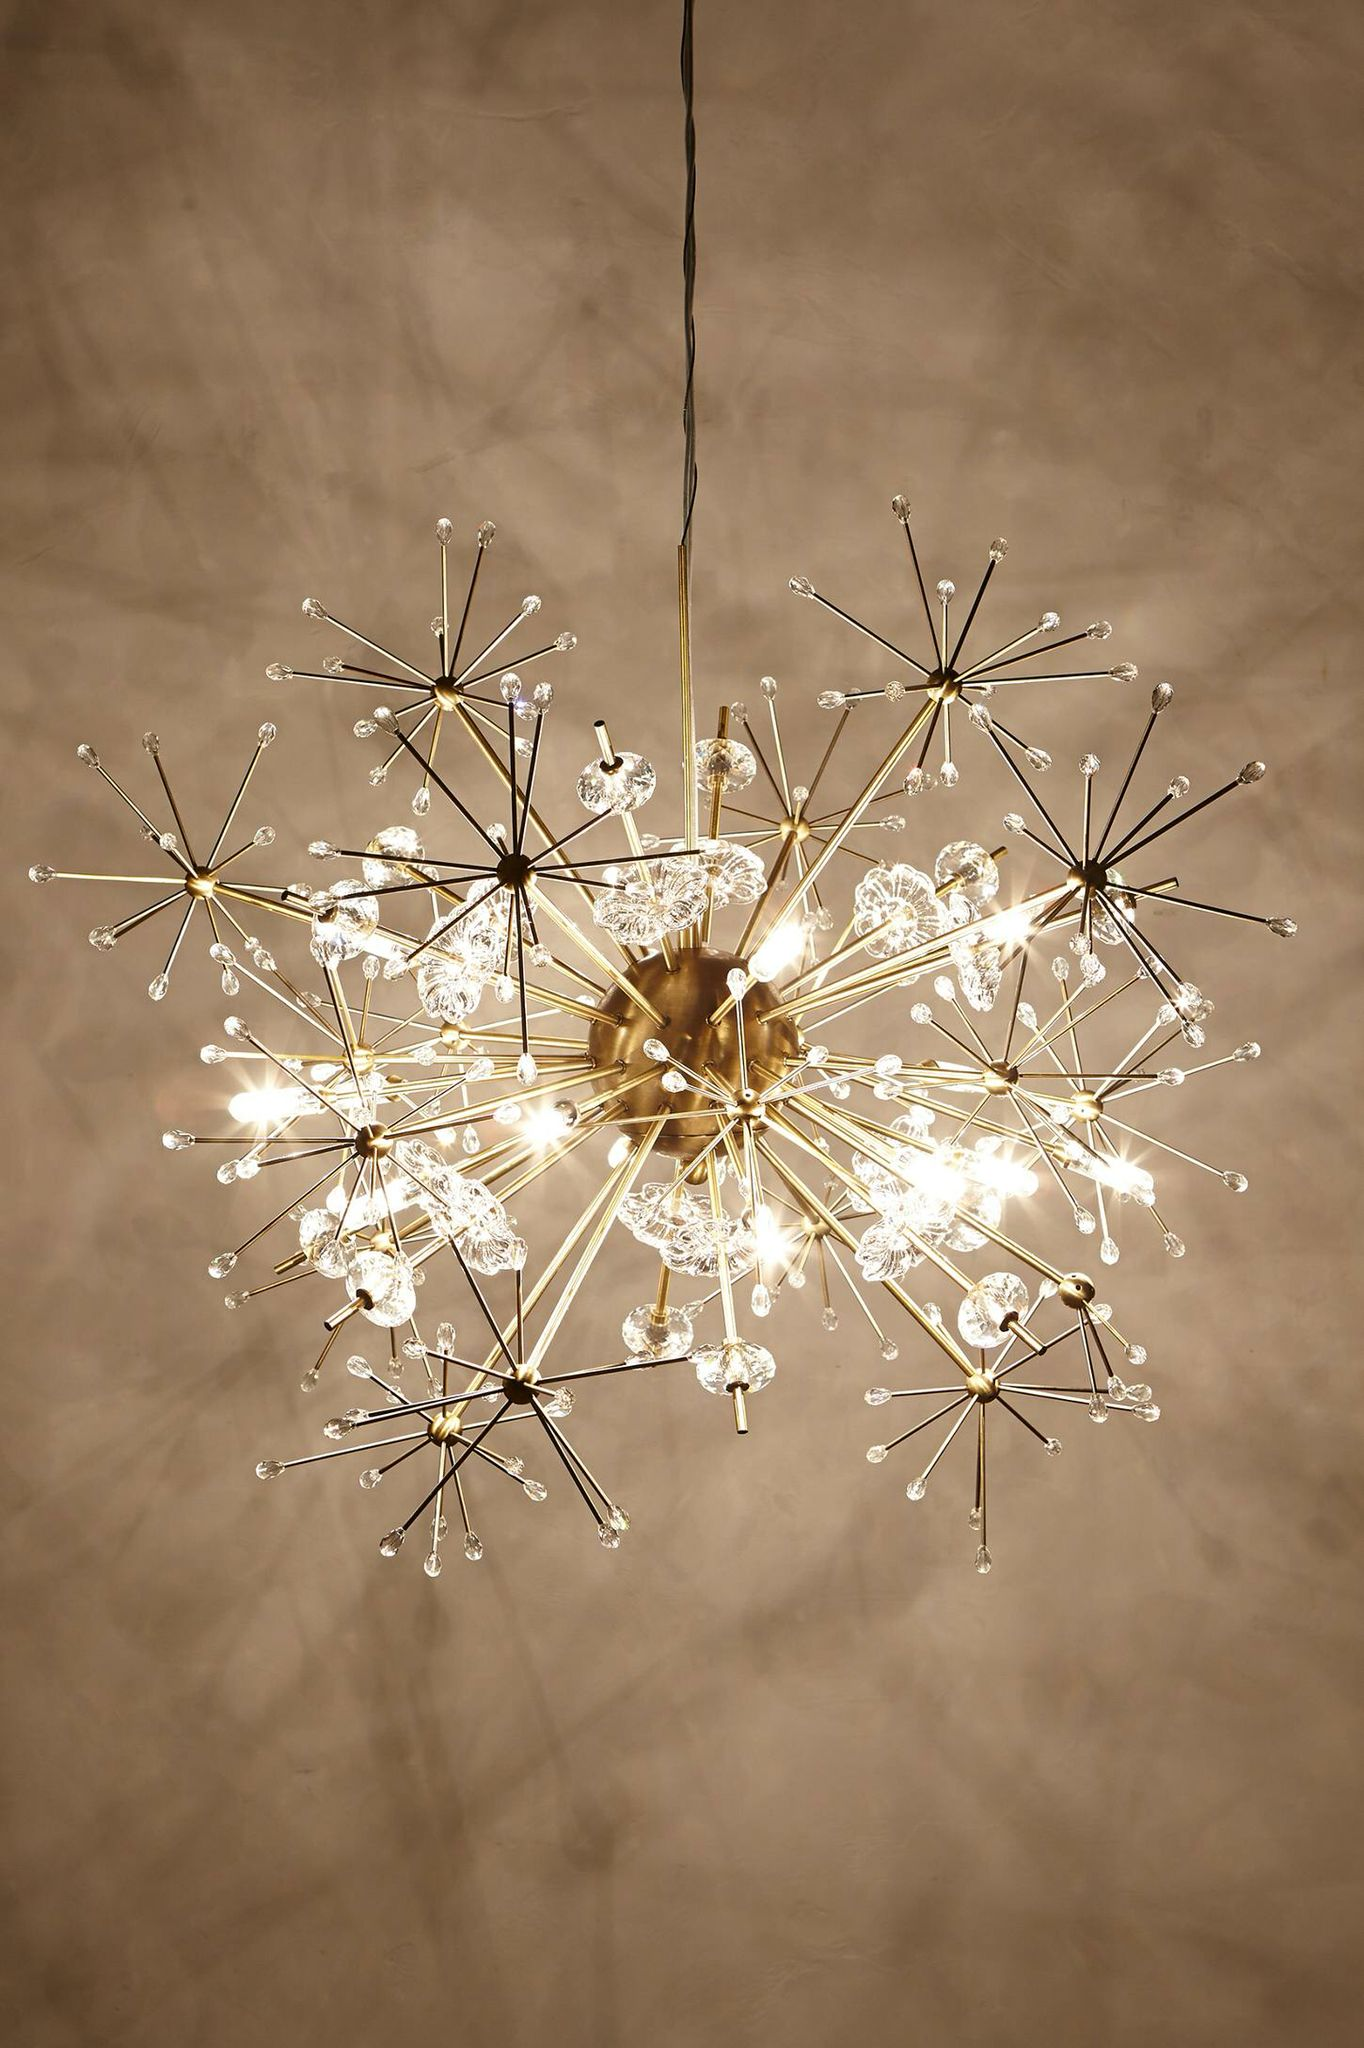 Pin by Kathy Lugo on LUCIOUS LIGHTING Pinterest